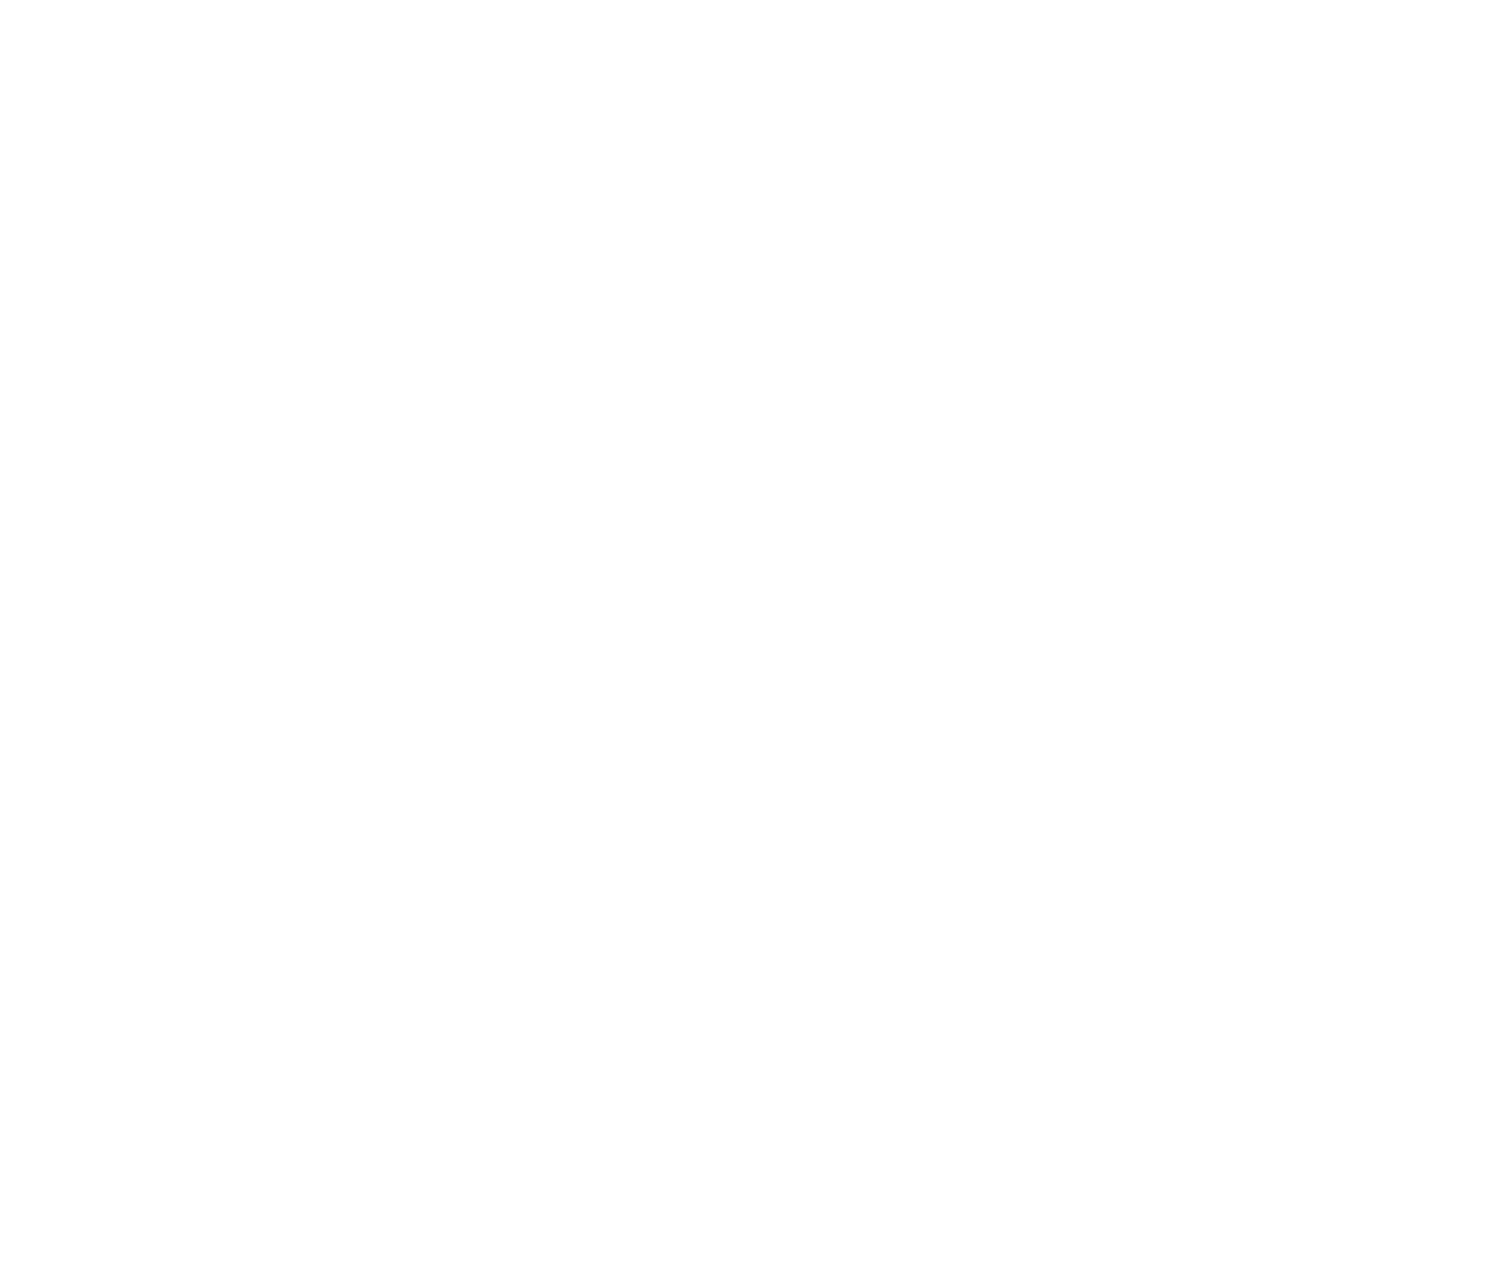 Screw City CrossFit